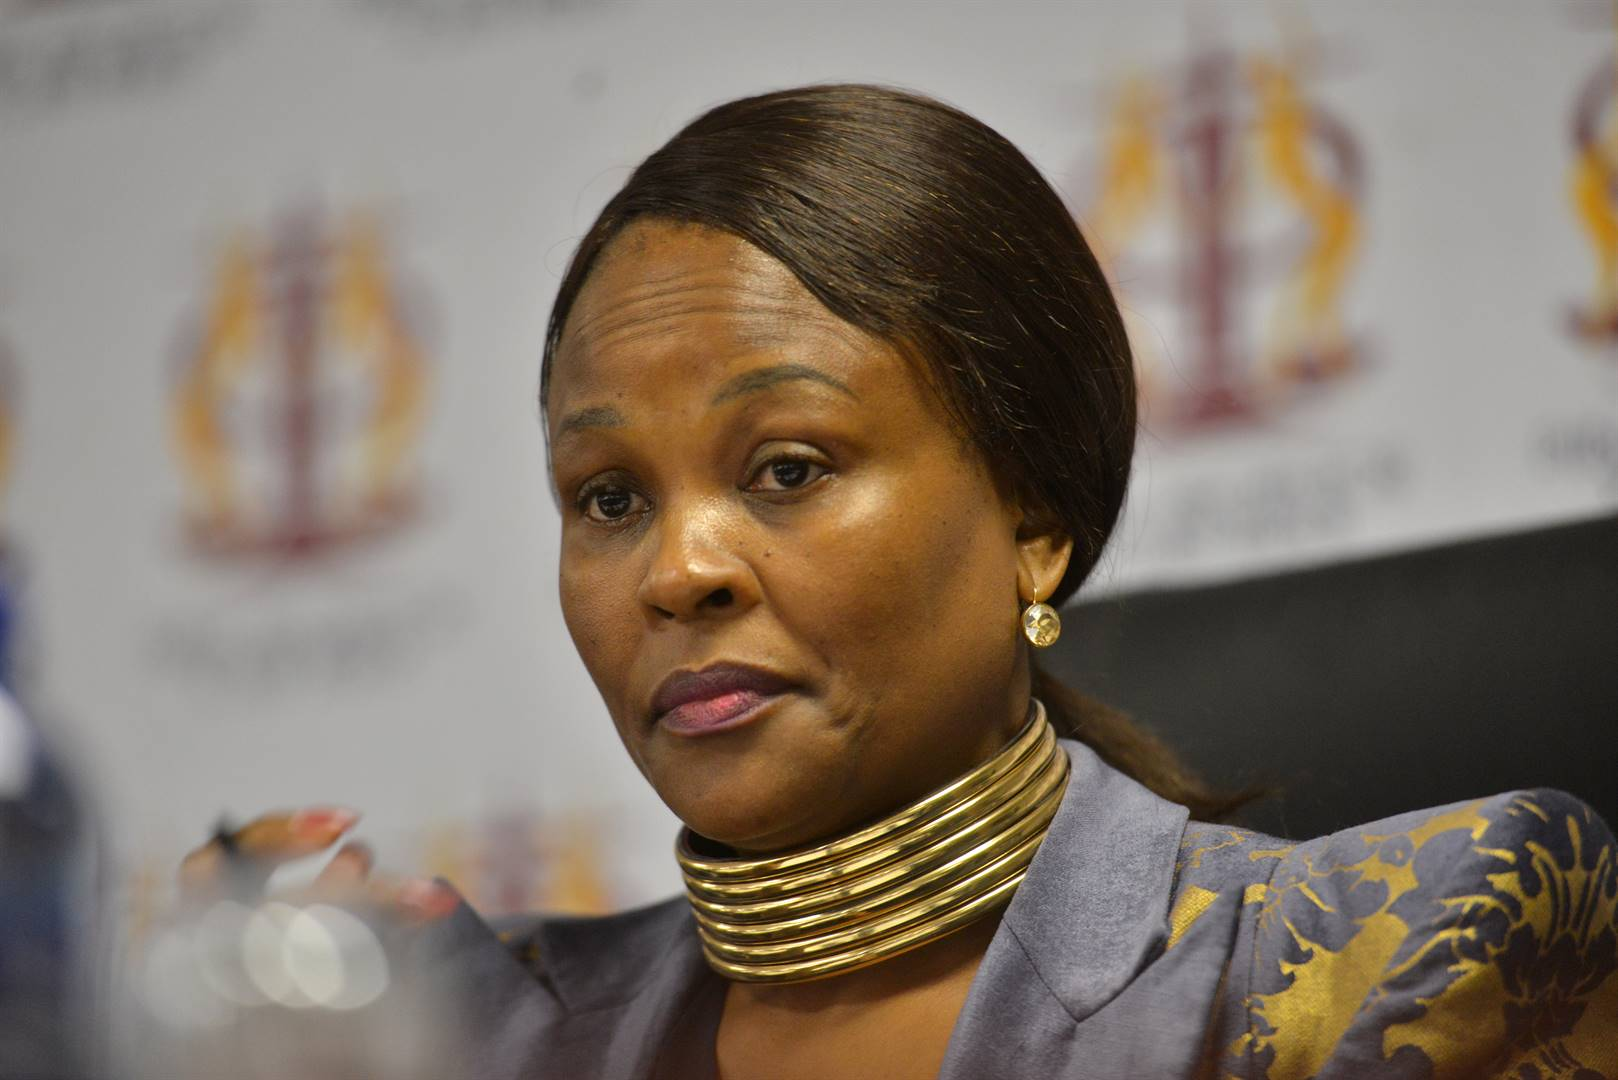 No more denying, Public Protector must go